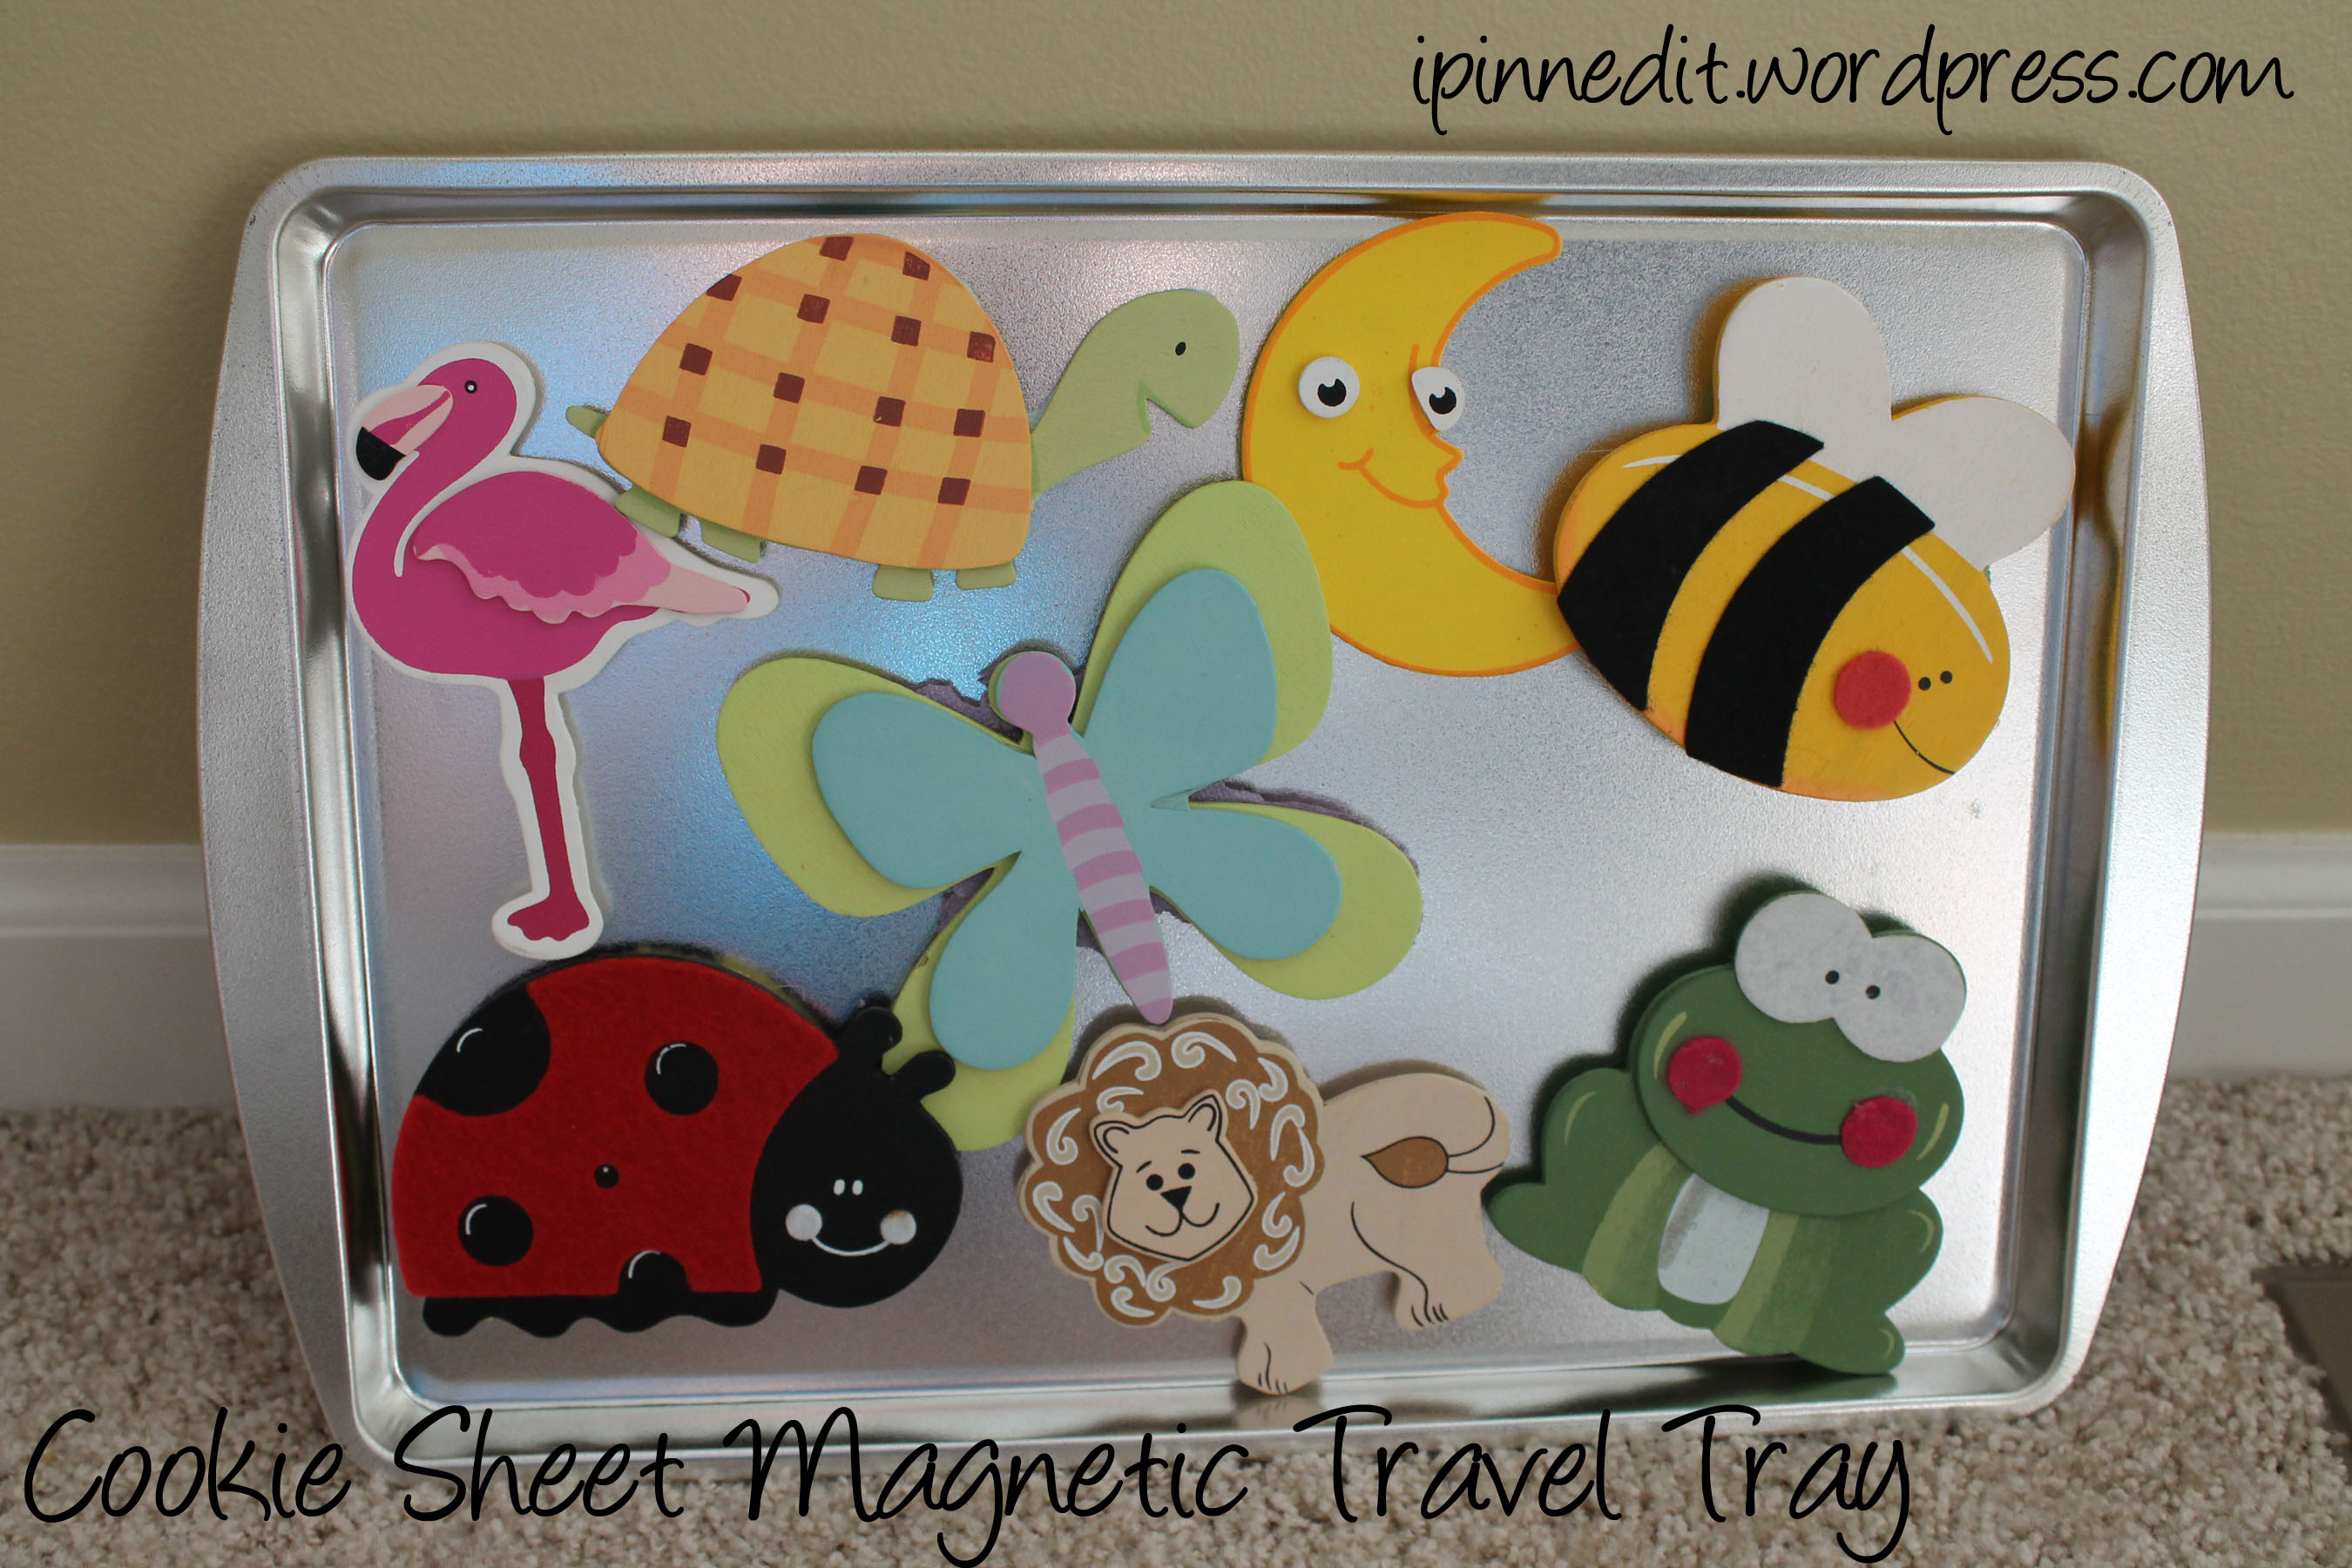 Cookie Sheet Magnetic Tray Ipinnedit